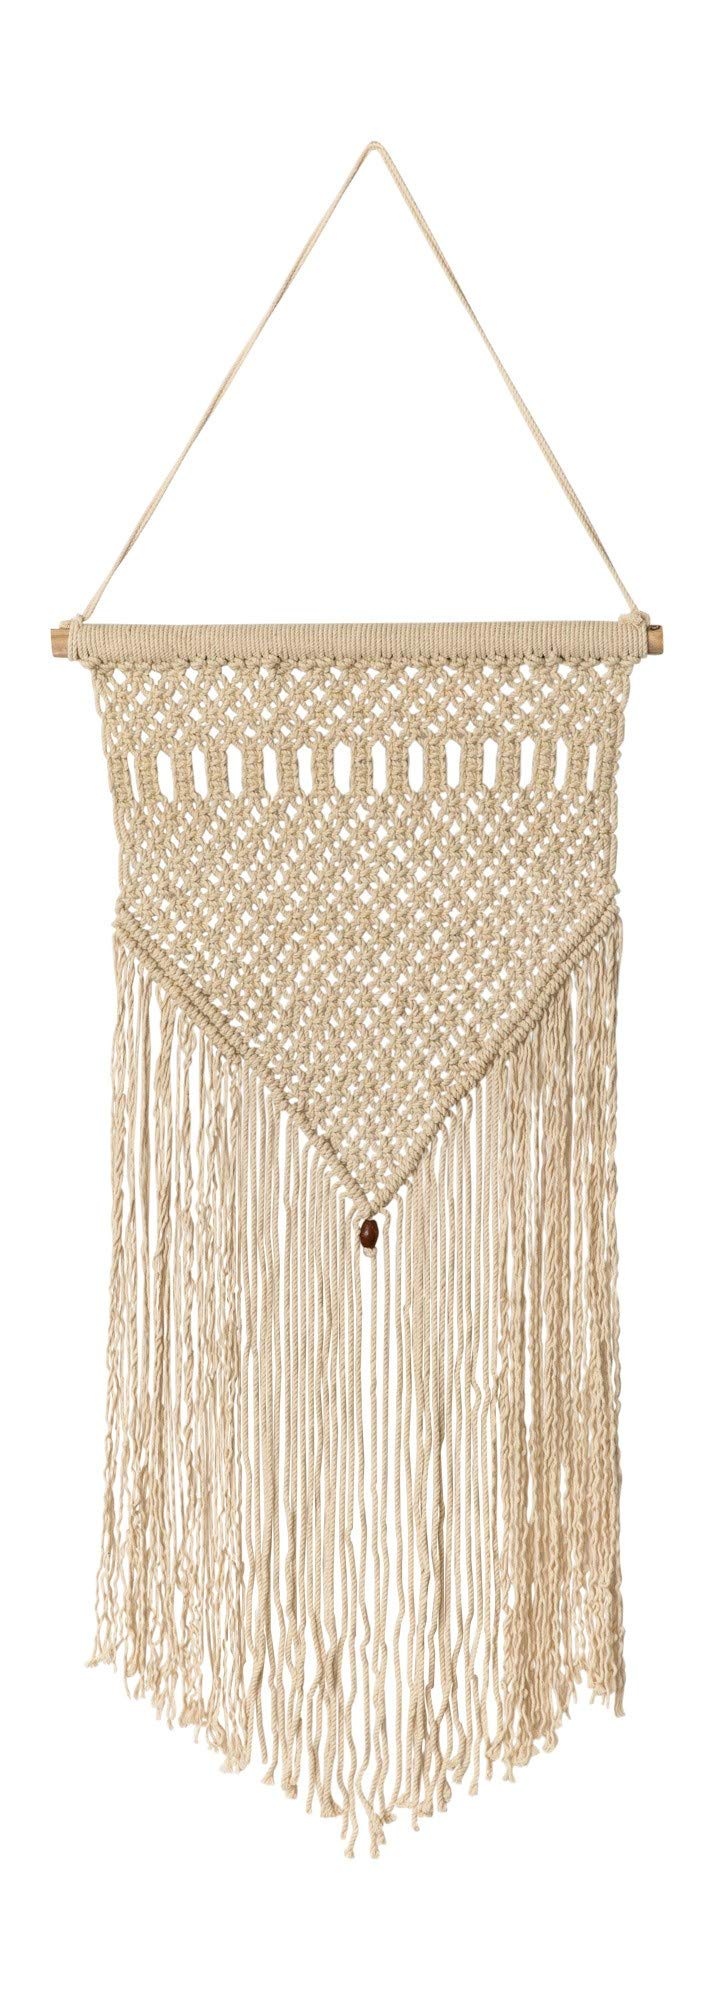 IWR Home Macrame Wall Hanging Tapestry Bohemian Wall Decor